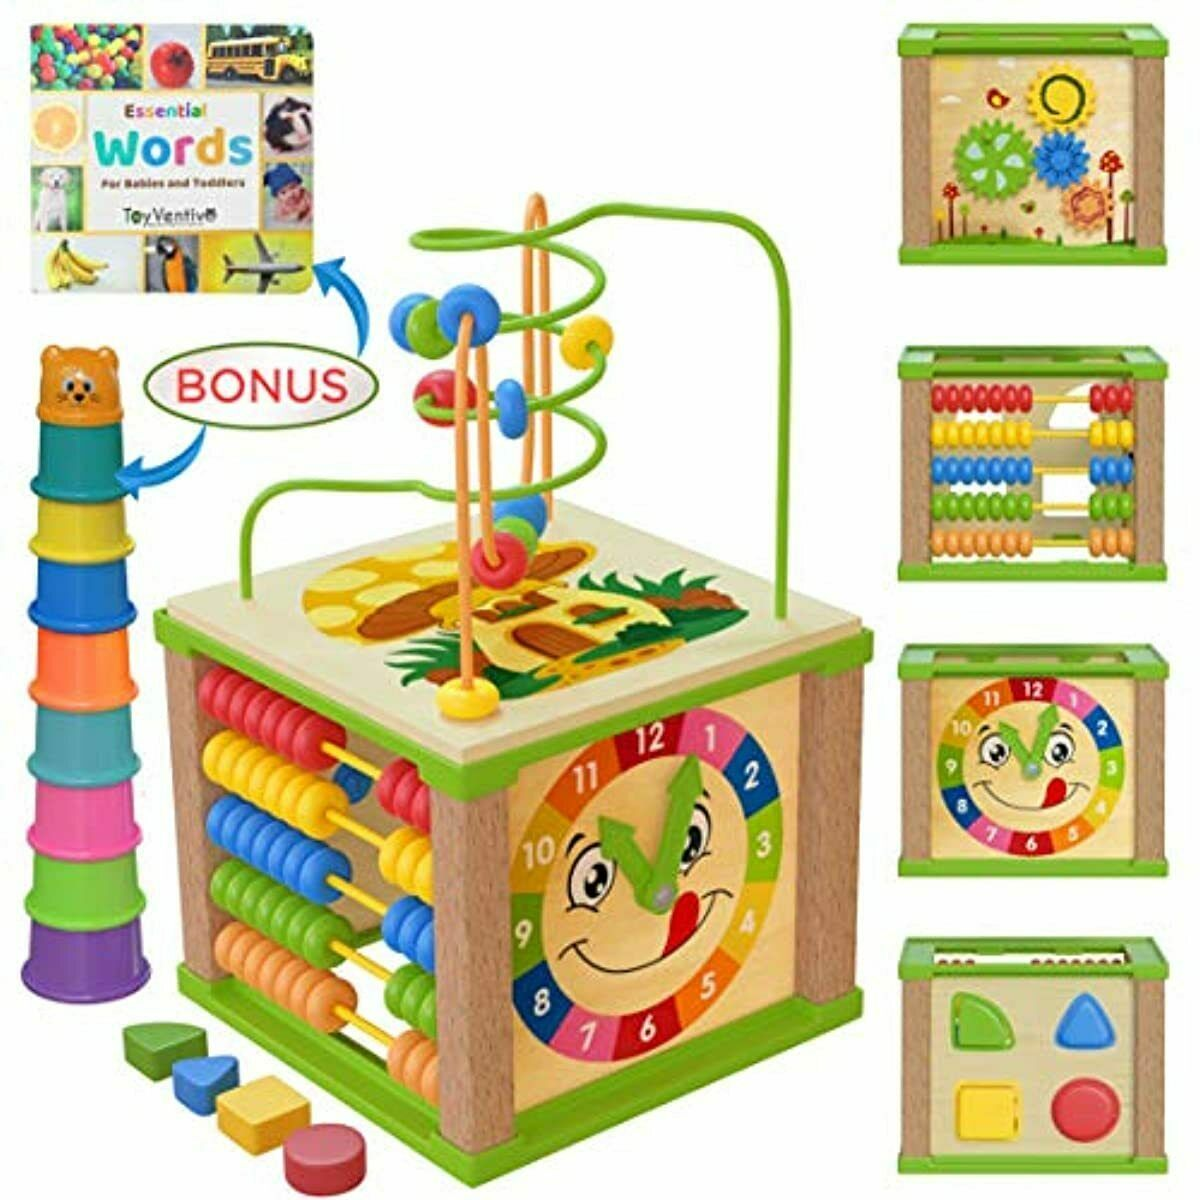 Baby Toy Tool Kit Preschool Toddler 18 24 36 Month Old Kids 1 2 3 Year Age Gift For Sale Online Ebay